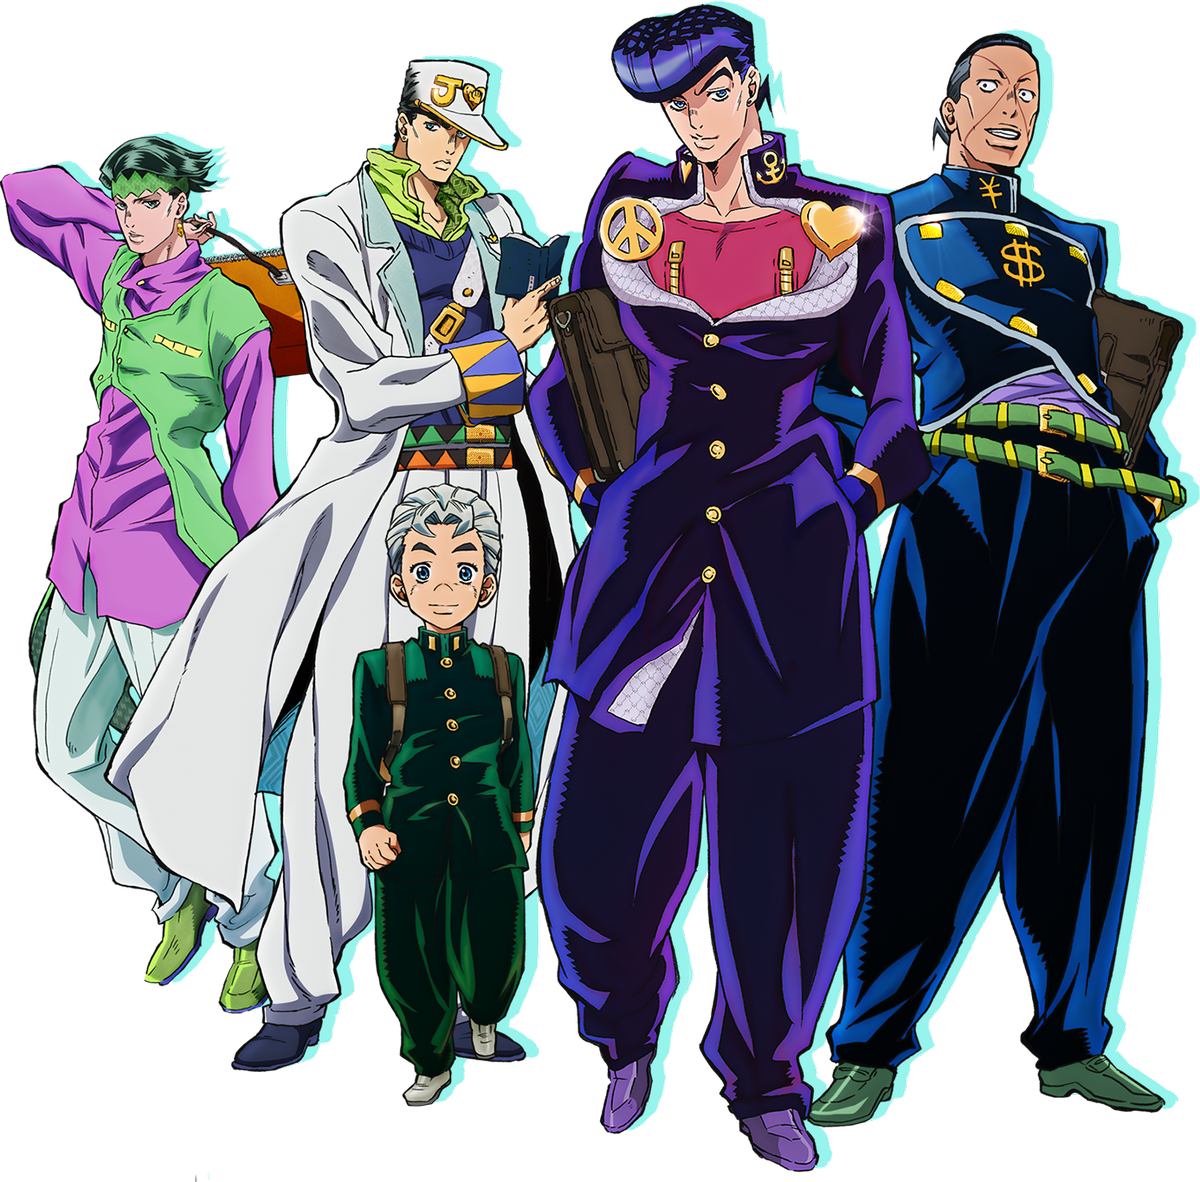 JoJo's Bizarre Adventure Part 4 TV Anime Visual